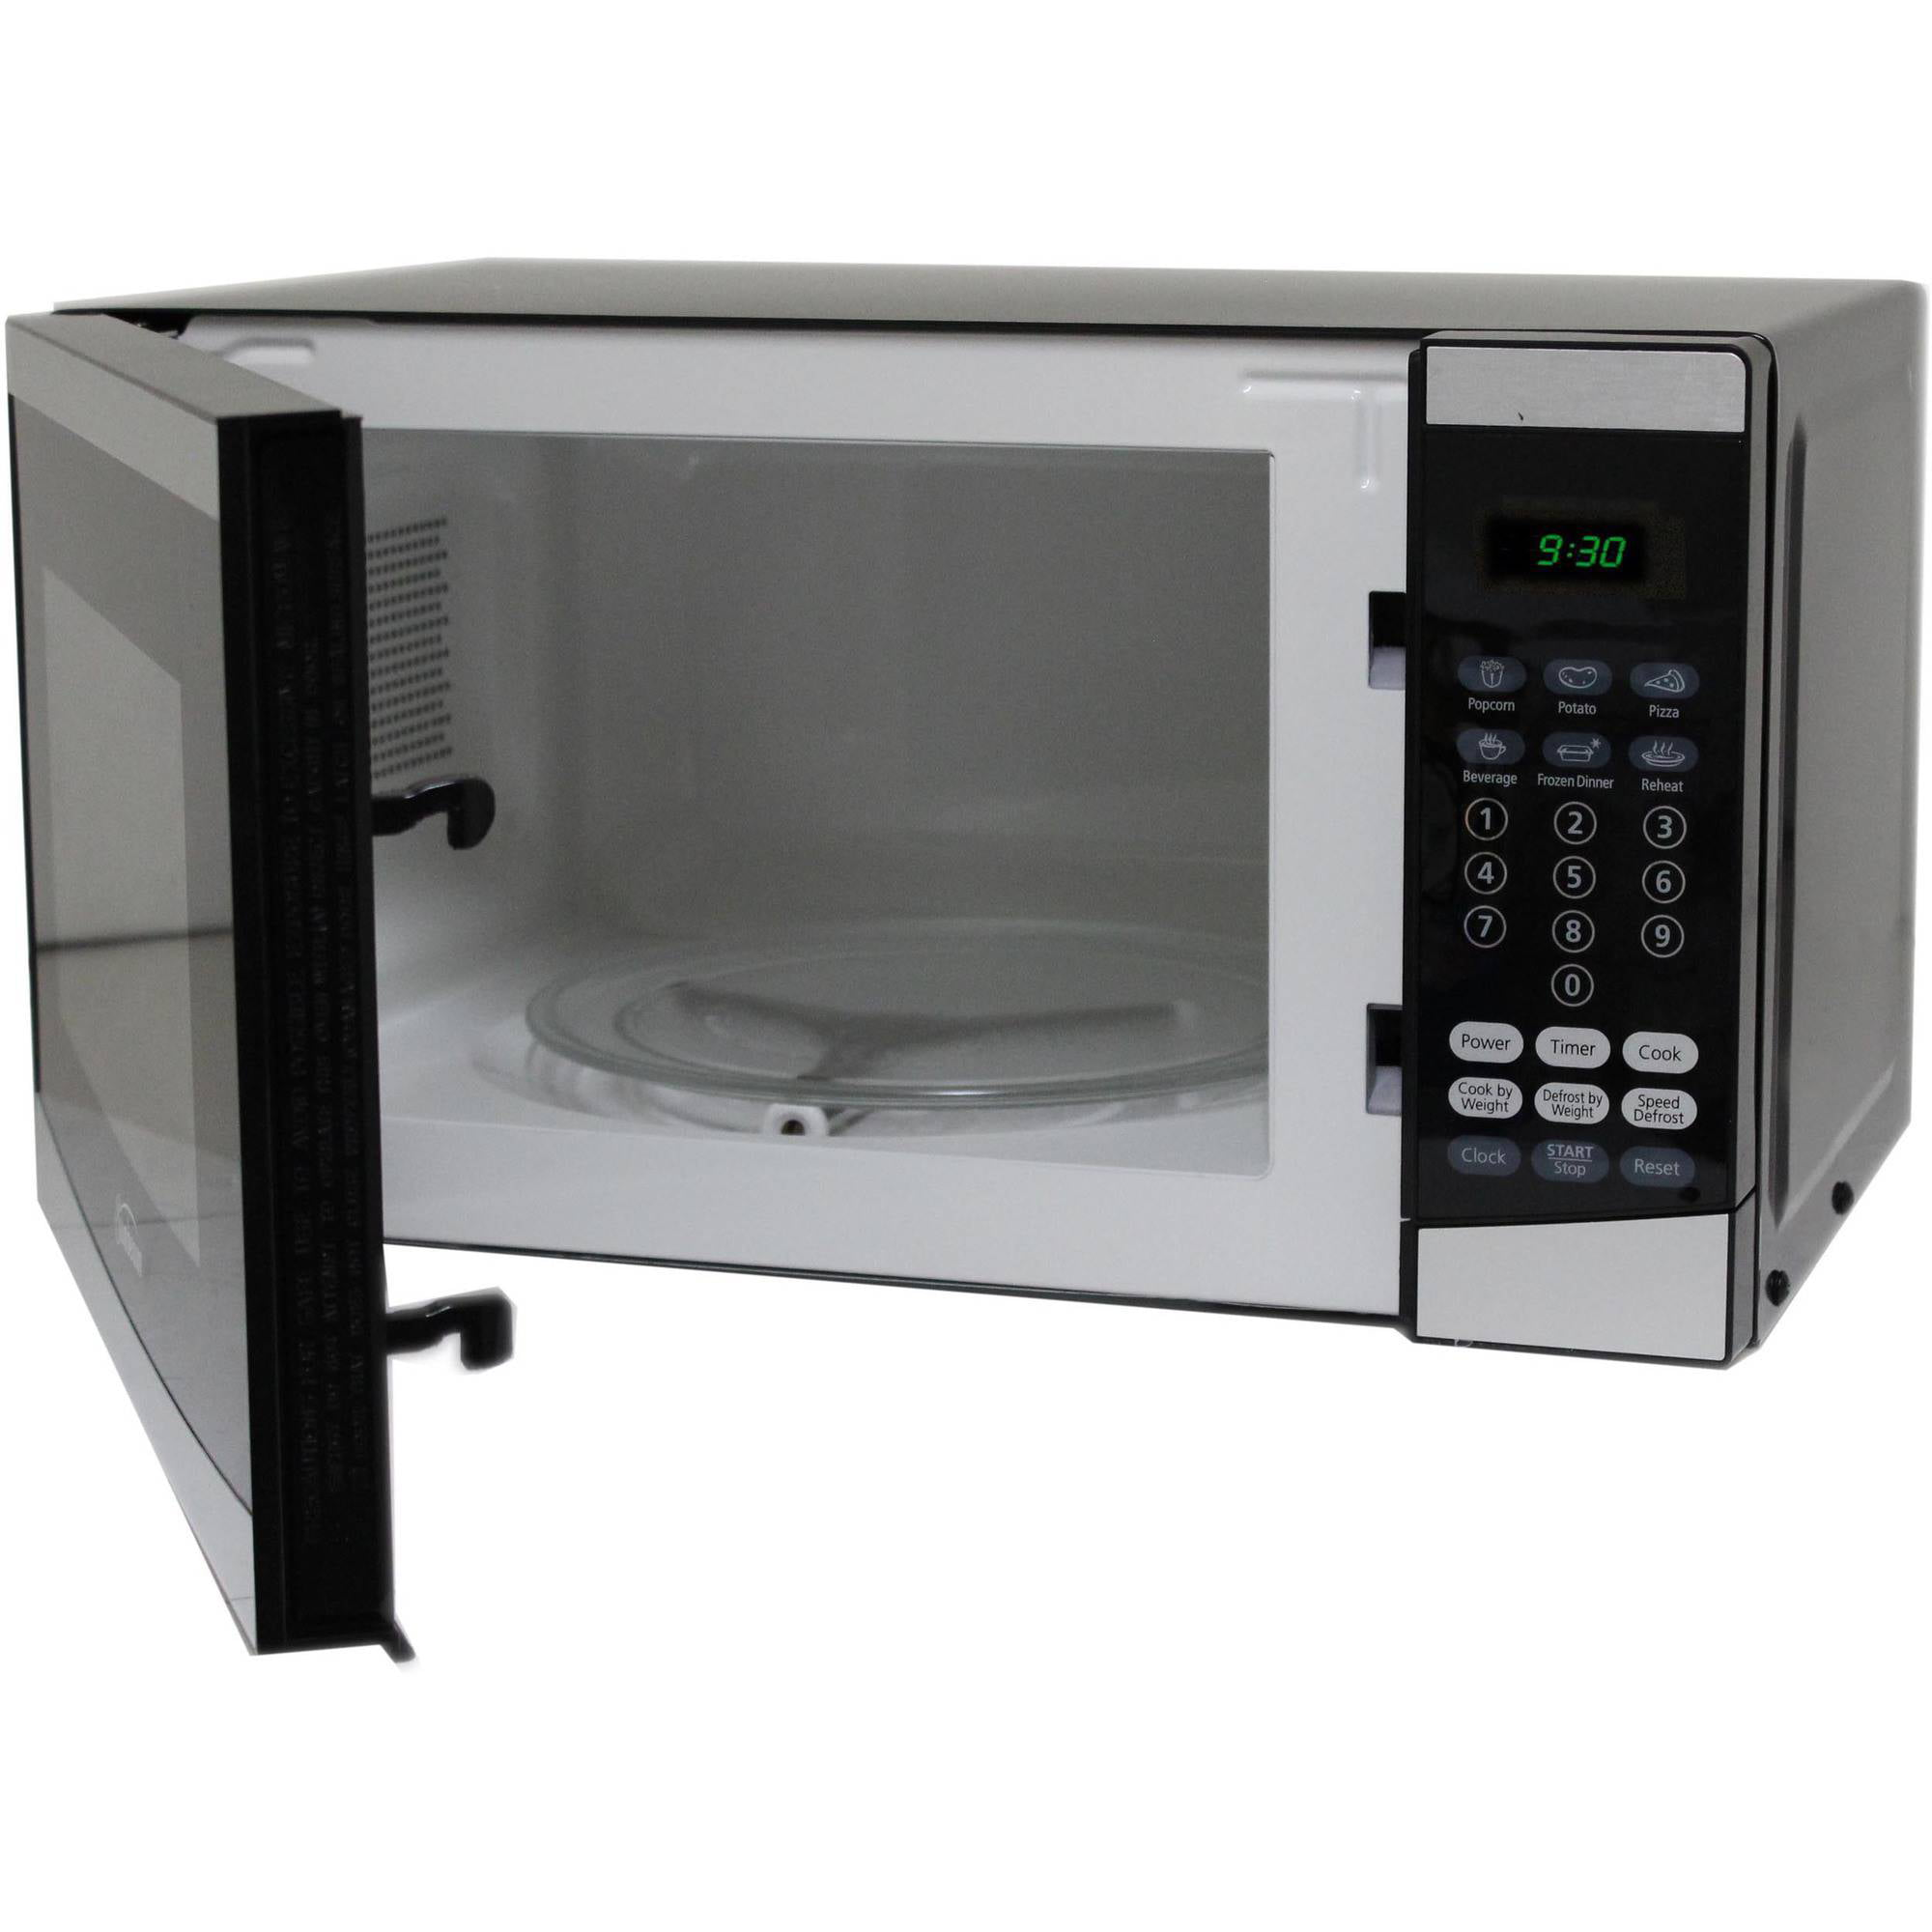 Sunbeam Ft Cu 0 7 Microwave Stainless Steel